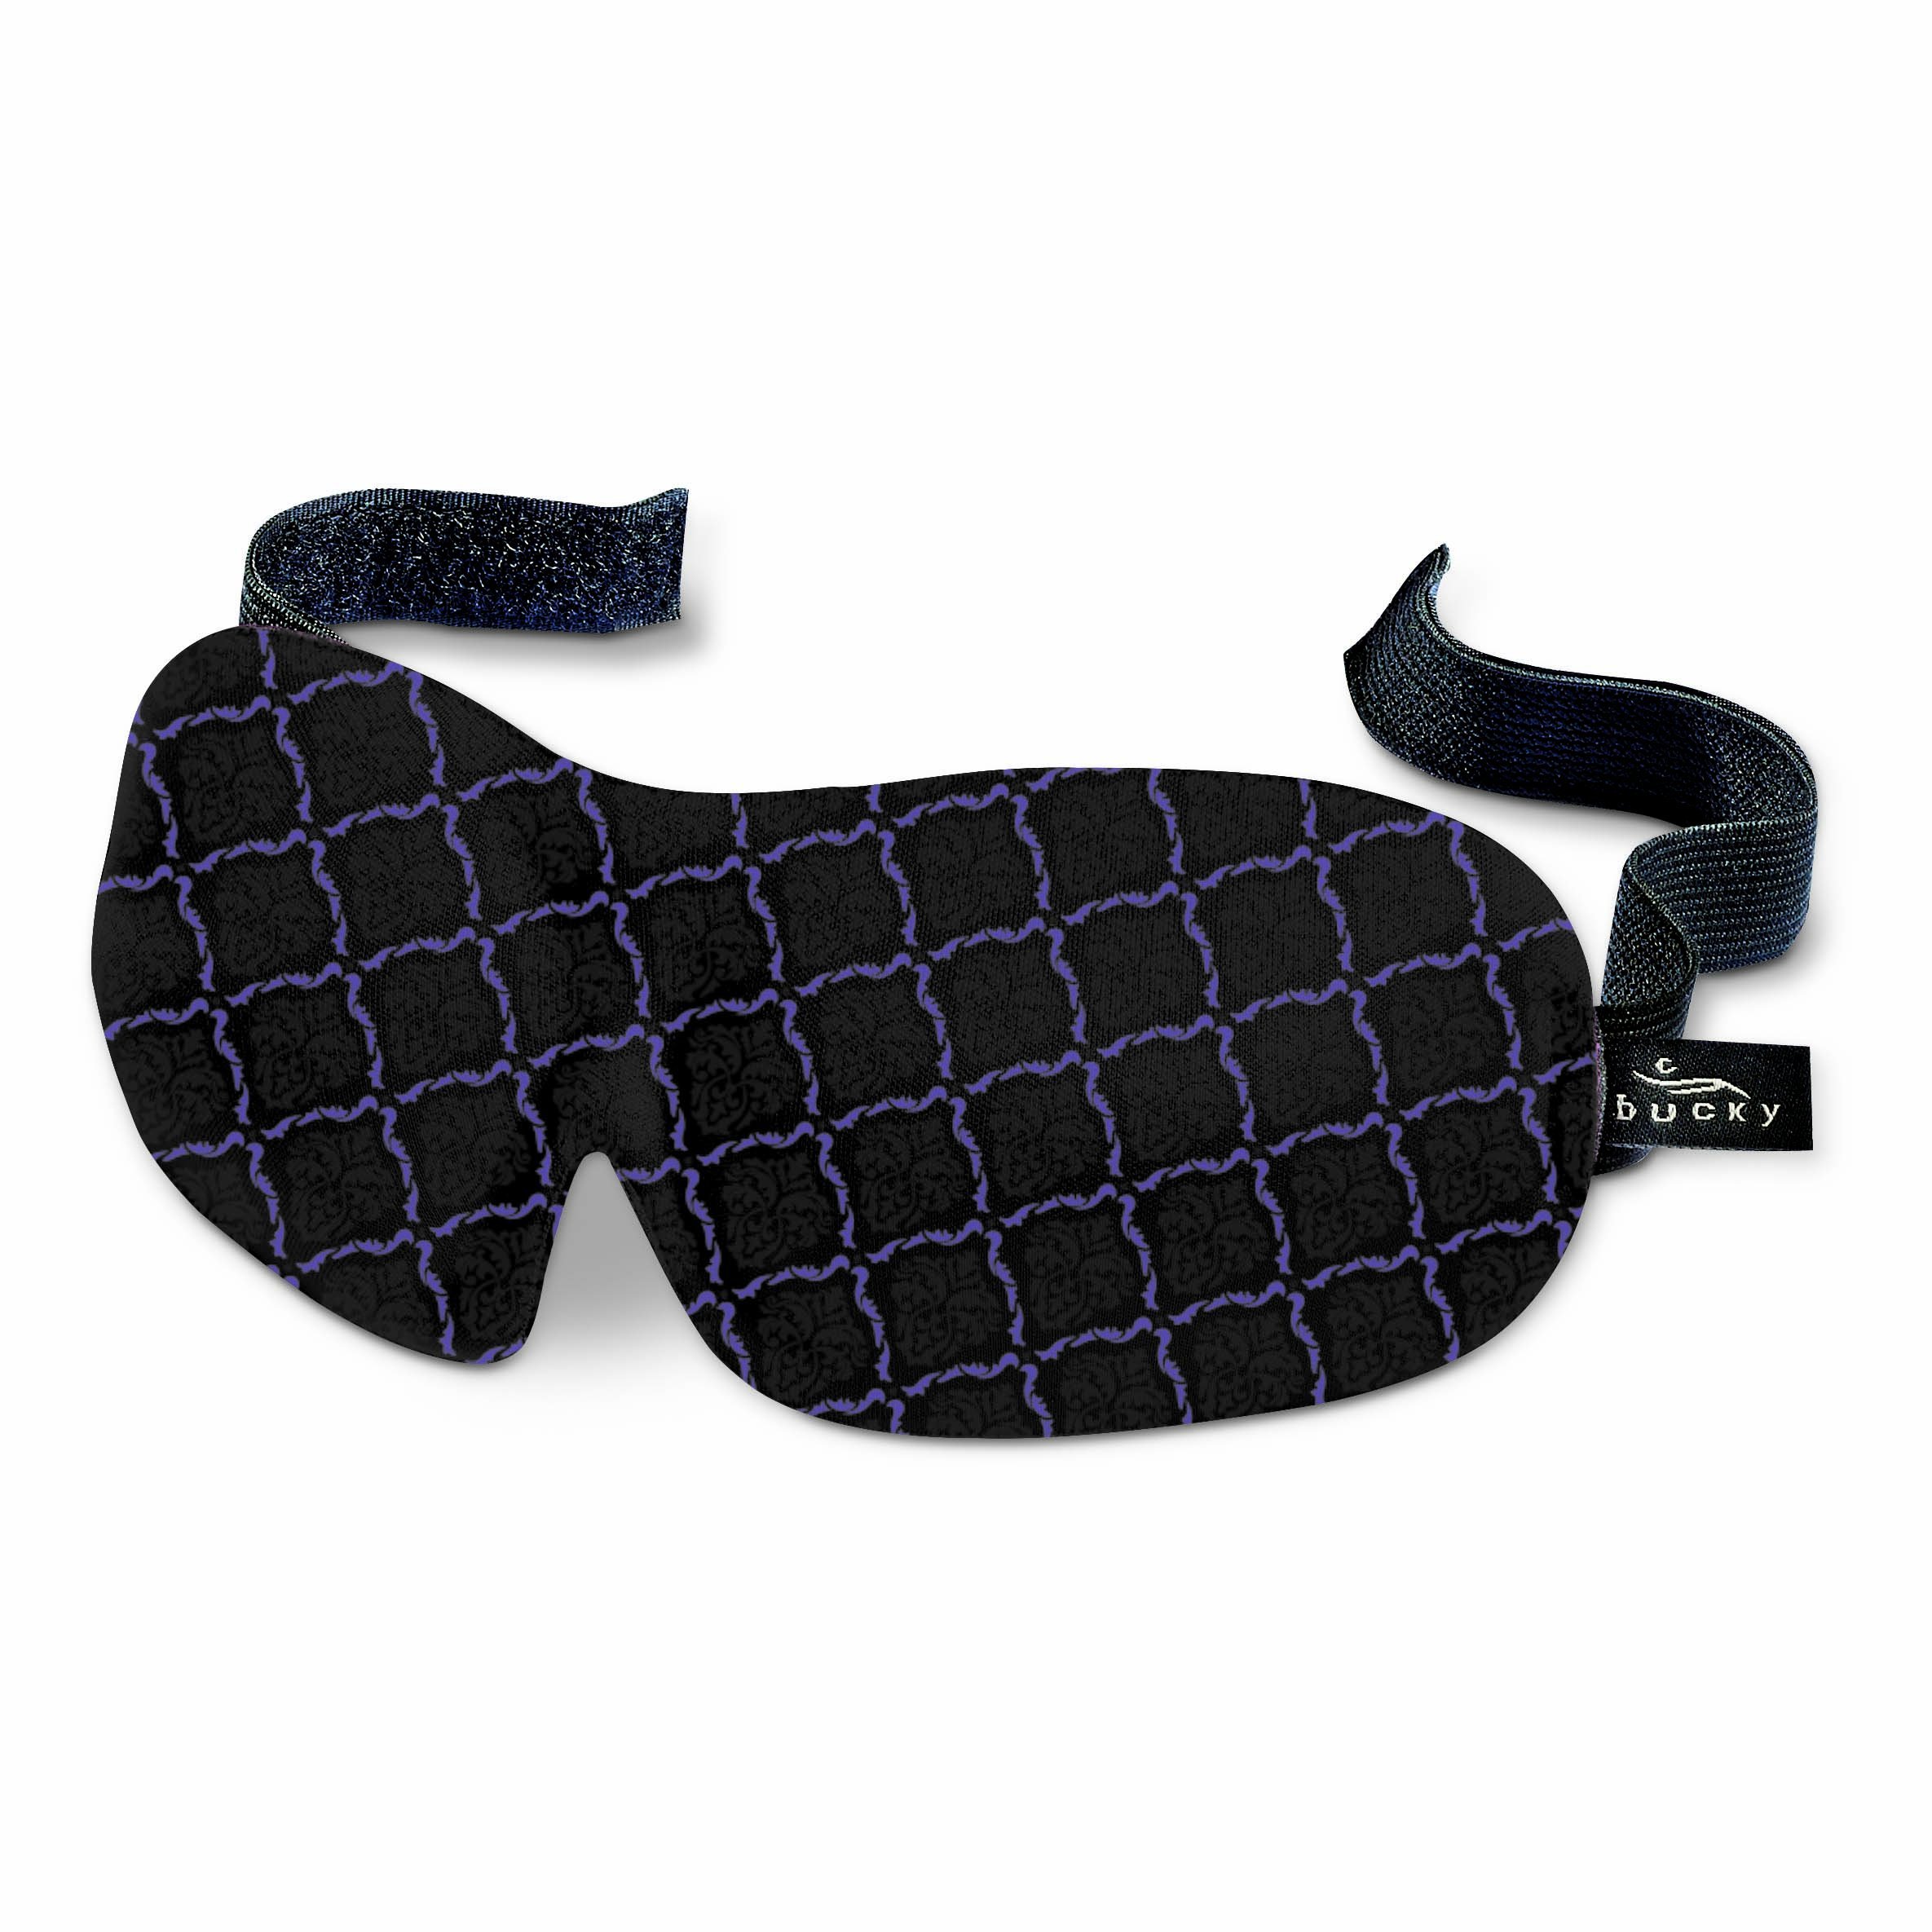 Bucky 40 Blinks Ultralight & Comfortable Contoured, No Pressure Eye Mask for Travel & Sleep, Perfect With Eyelash Extensions - Lattice